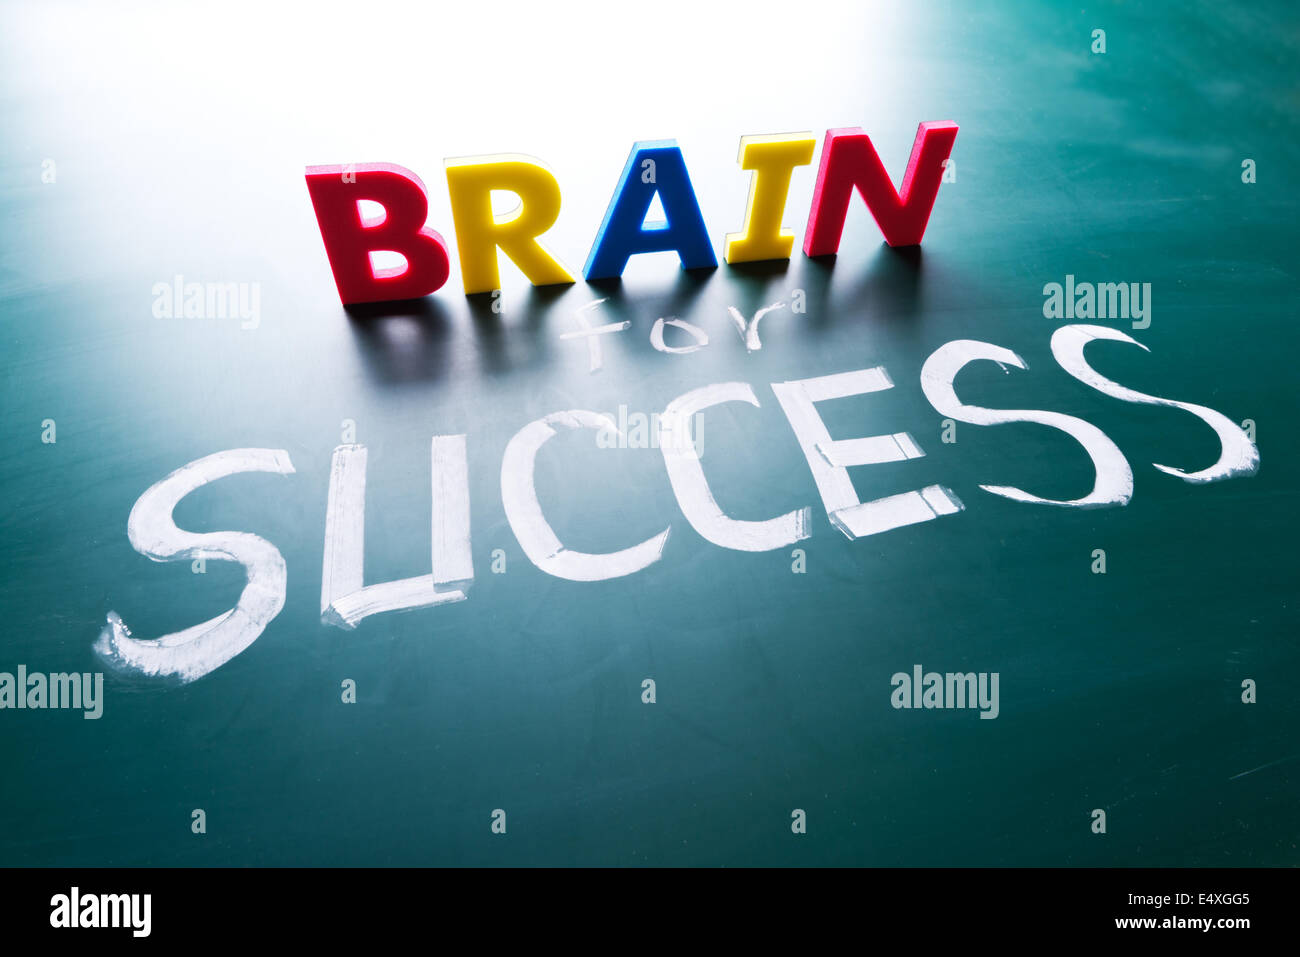 Brain for success concept - Stock Image